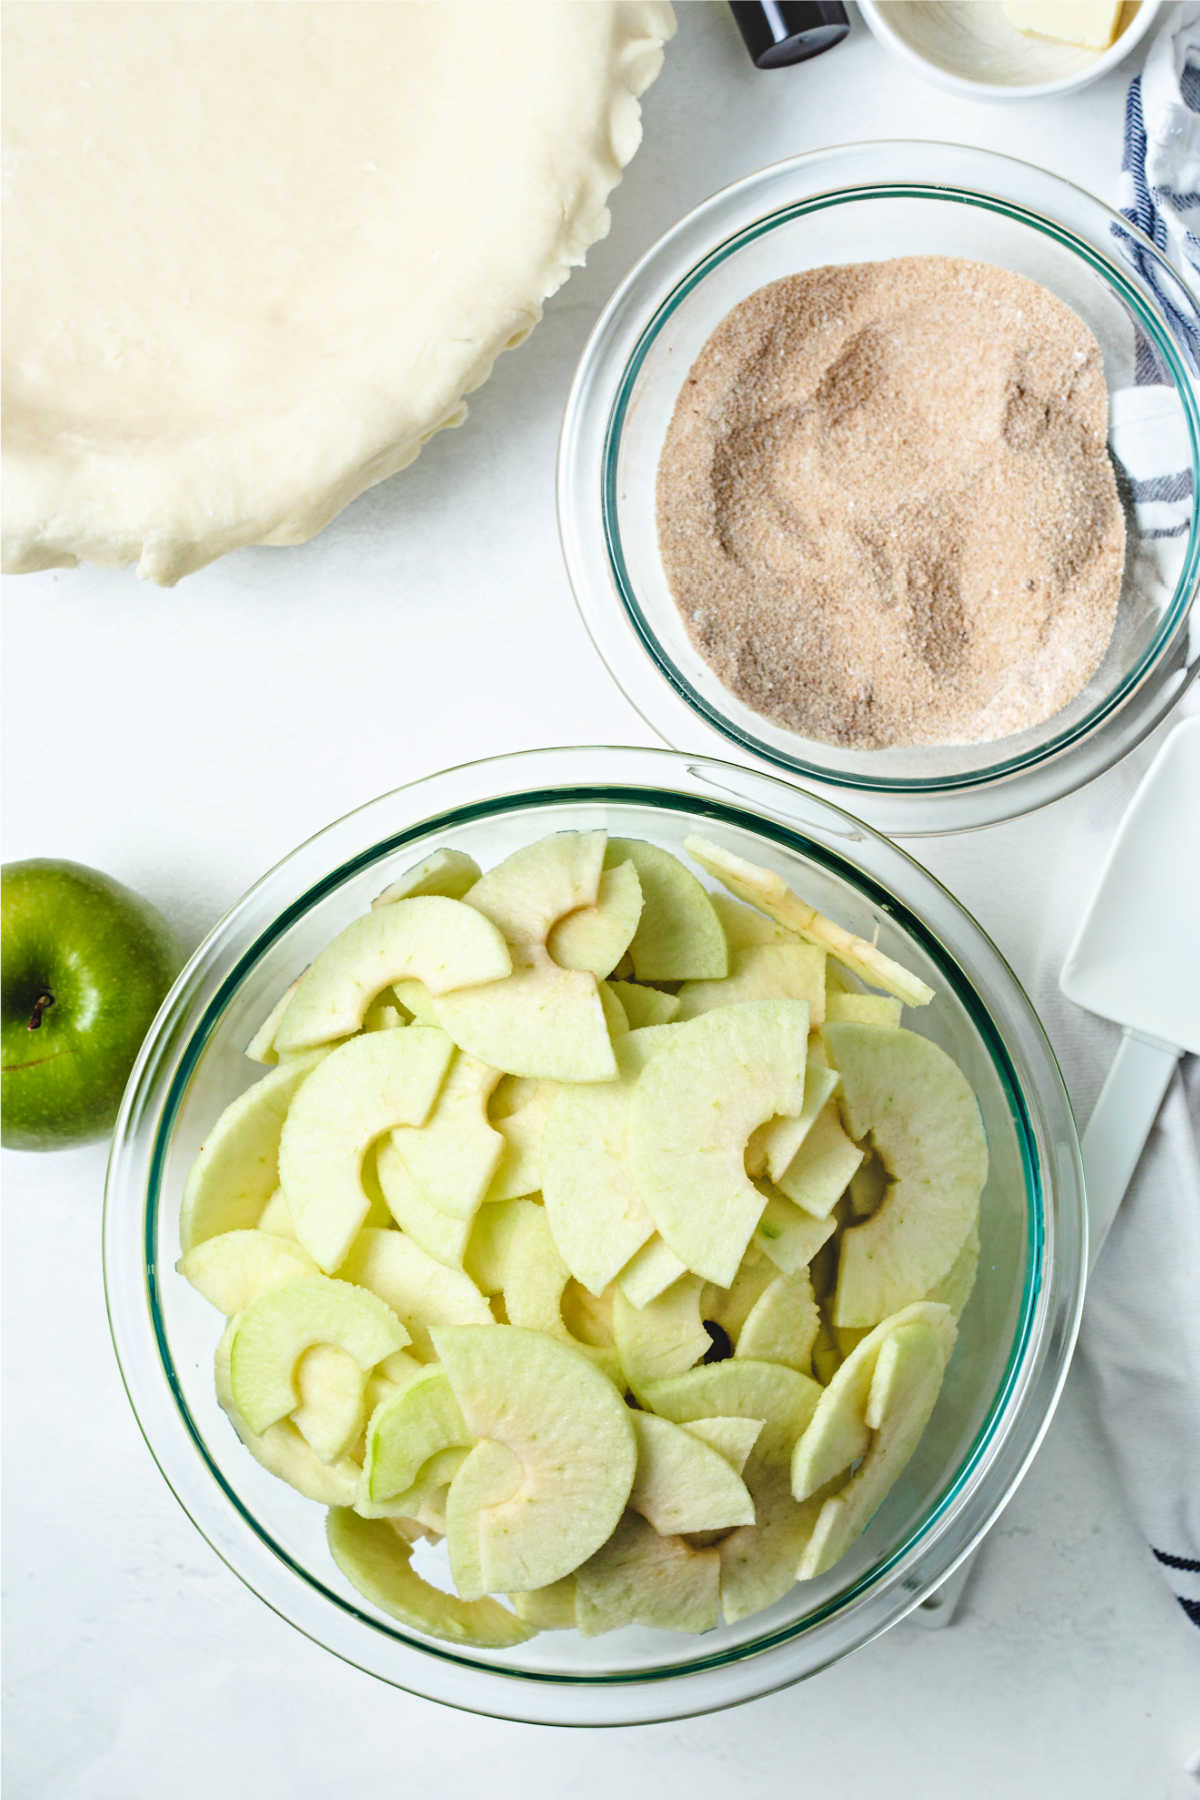 a bowl of thinly sliced apples, a bowl of cinnamon sugar, and an unbaked pie crust on a table.